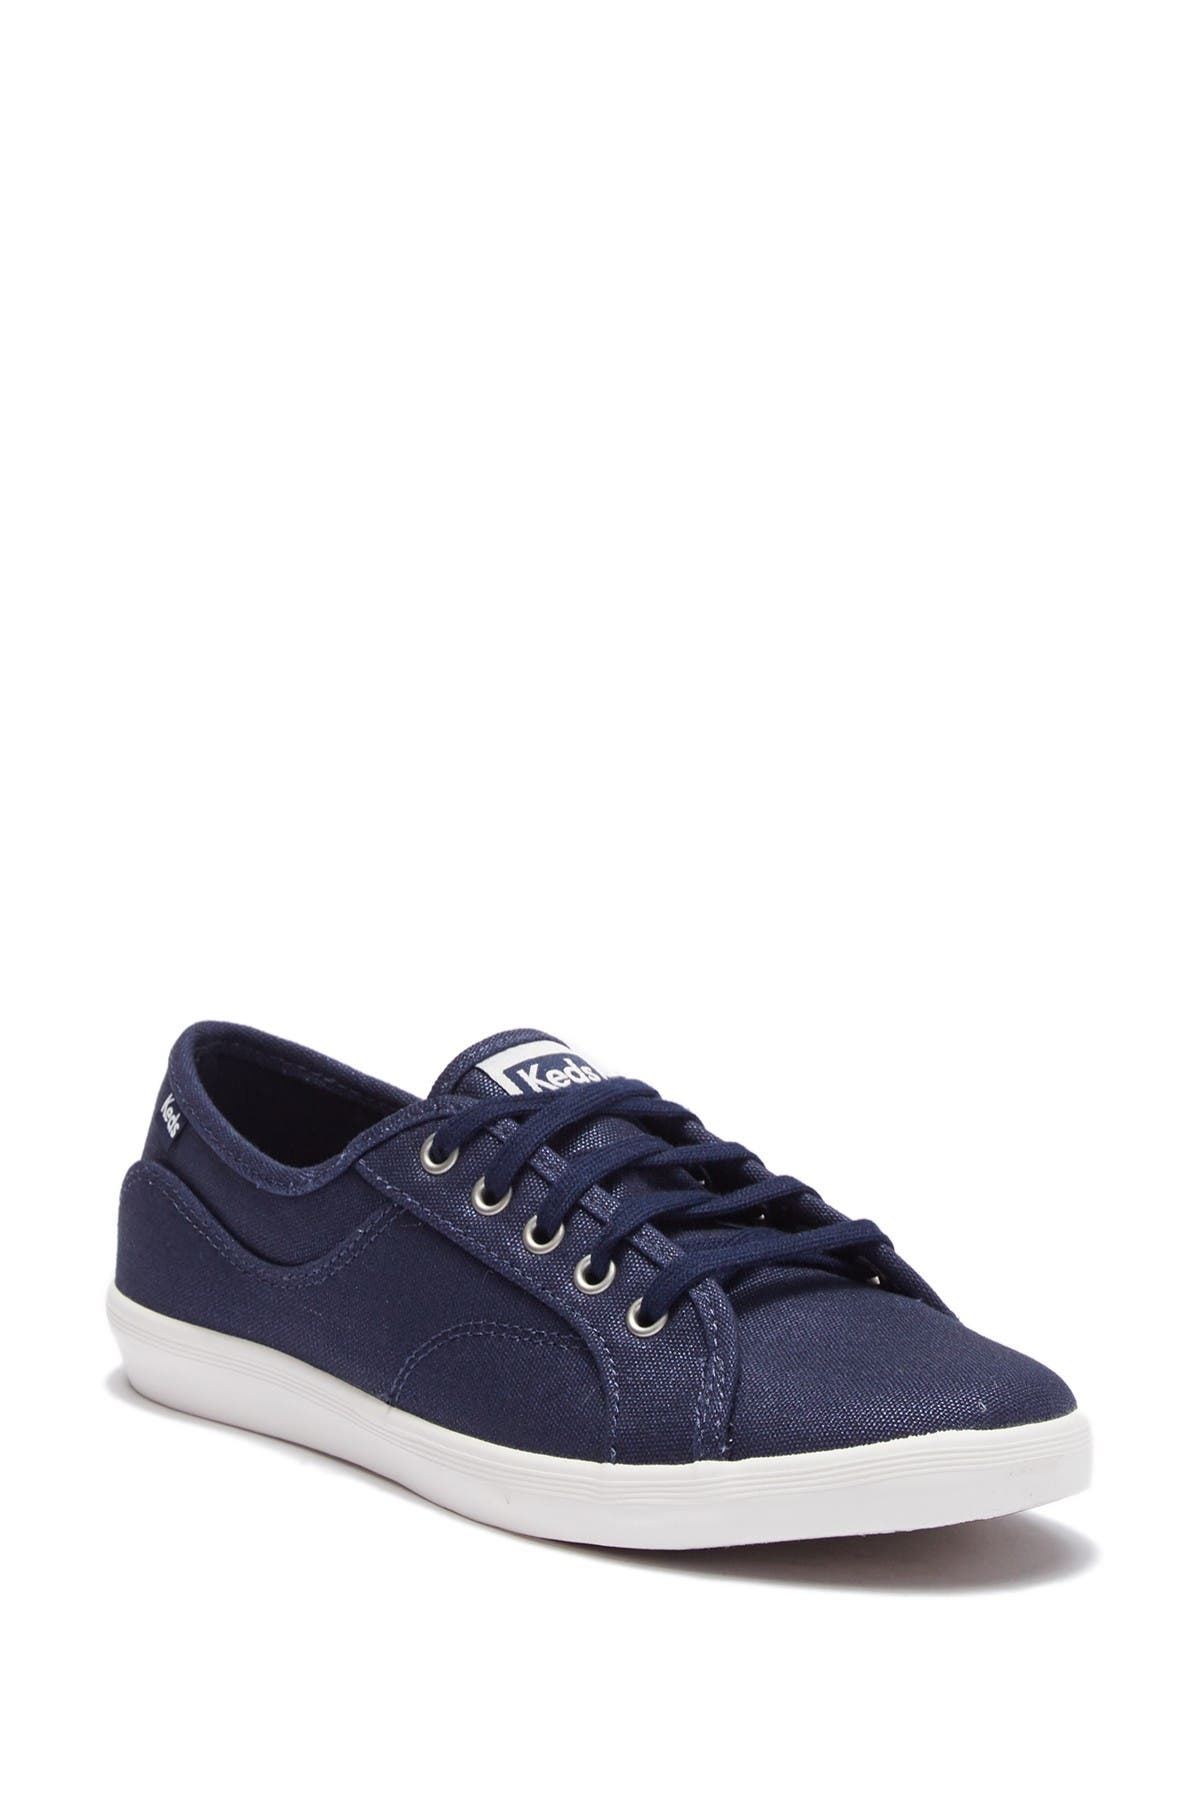 Image of Keds Coursa Sneaker